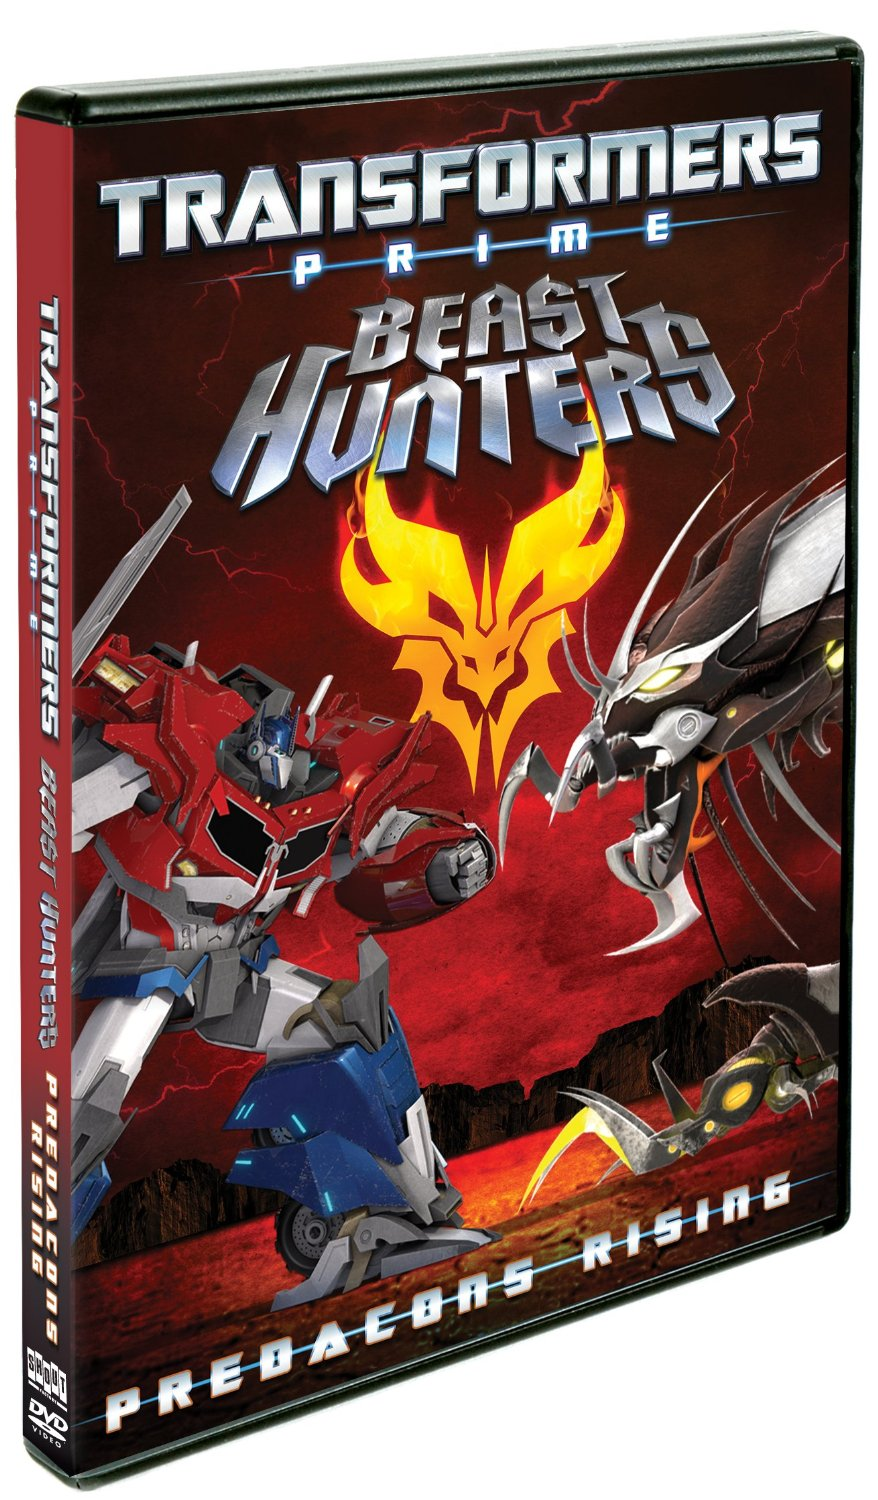 Re: Transformers Prime: Predacons Rising DVD and Blu-ray Set to Release in October